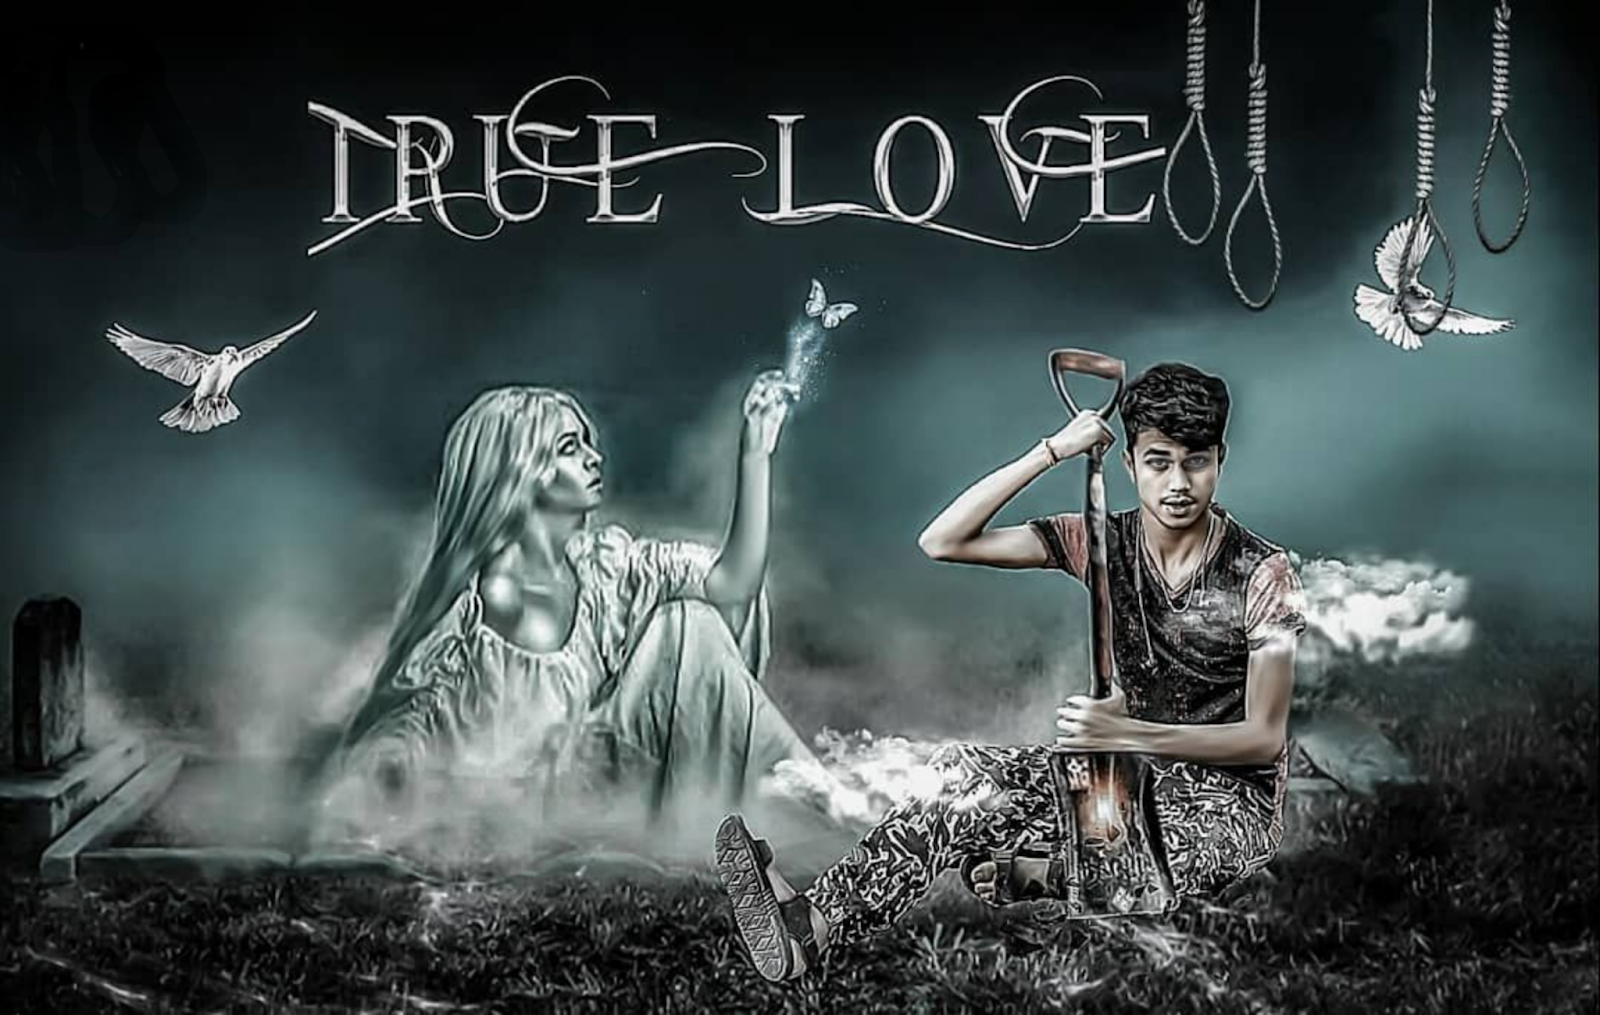 True Love Horror Photo Editing Background Png Download for